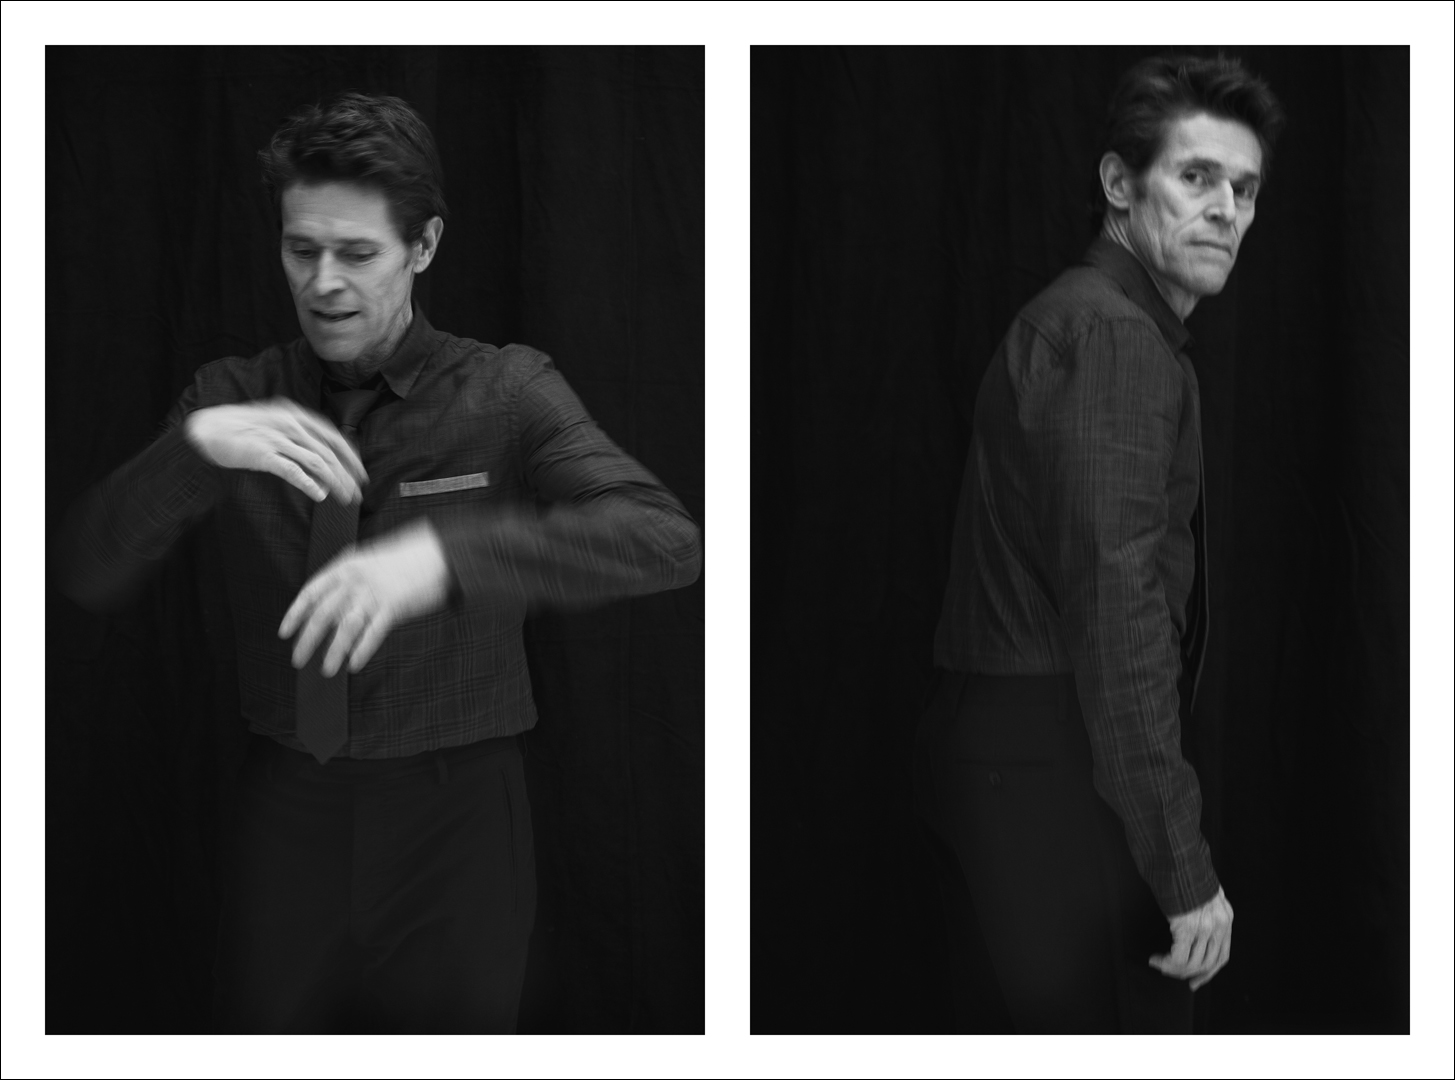 25_TIM_BARBER_WILLEM_DAFOE.jpg